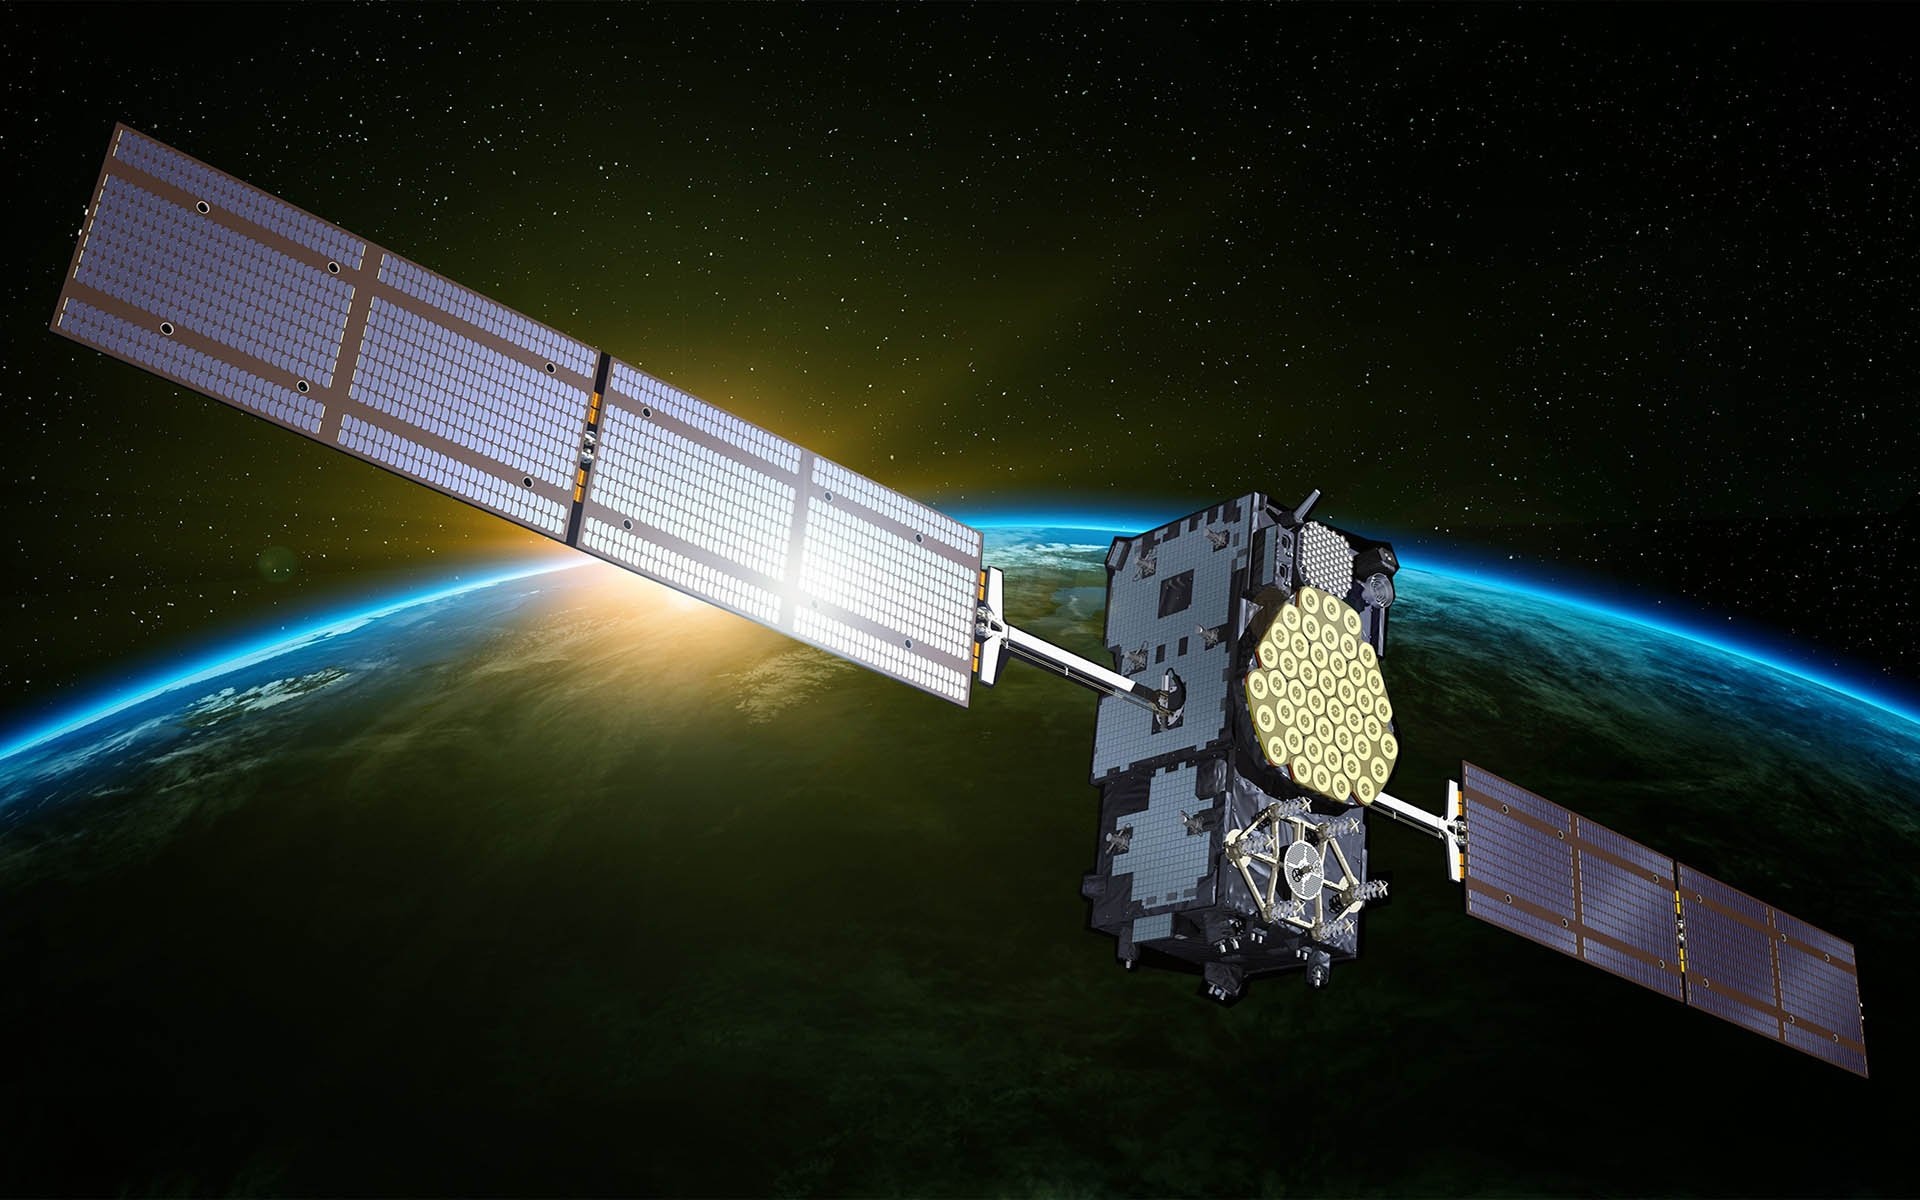 Blockstream Introduces Satellite Systems to Access the Blockchain